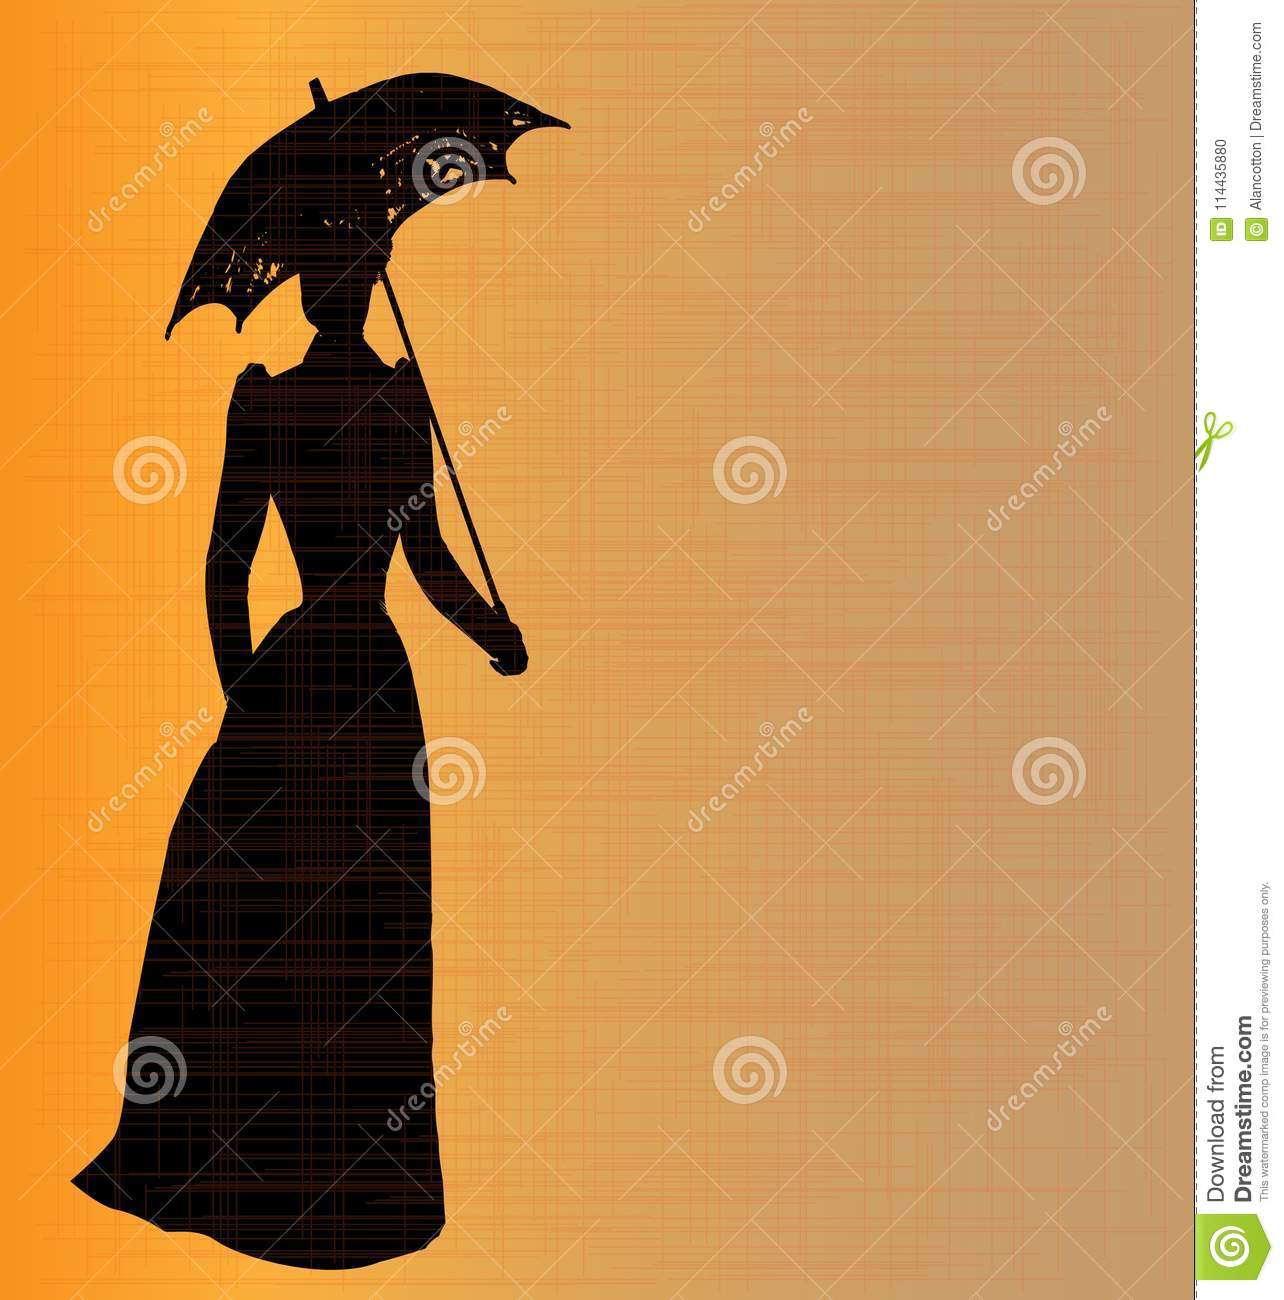 094c2f6d5cd Silhouette of a typical lady of the Victorian era with a grunge background.  More similar stock illustrations